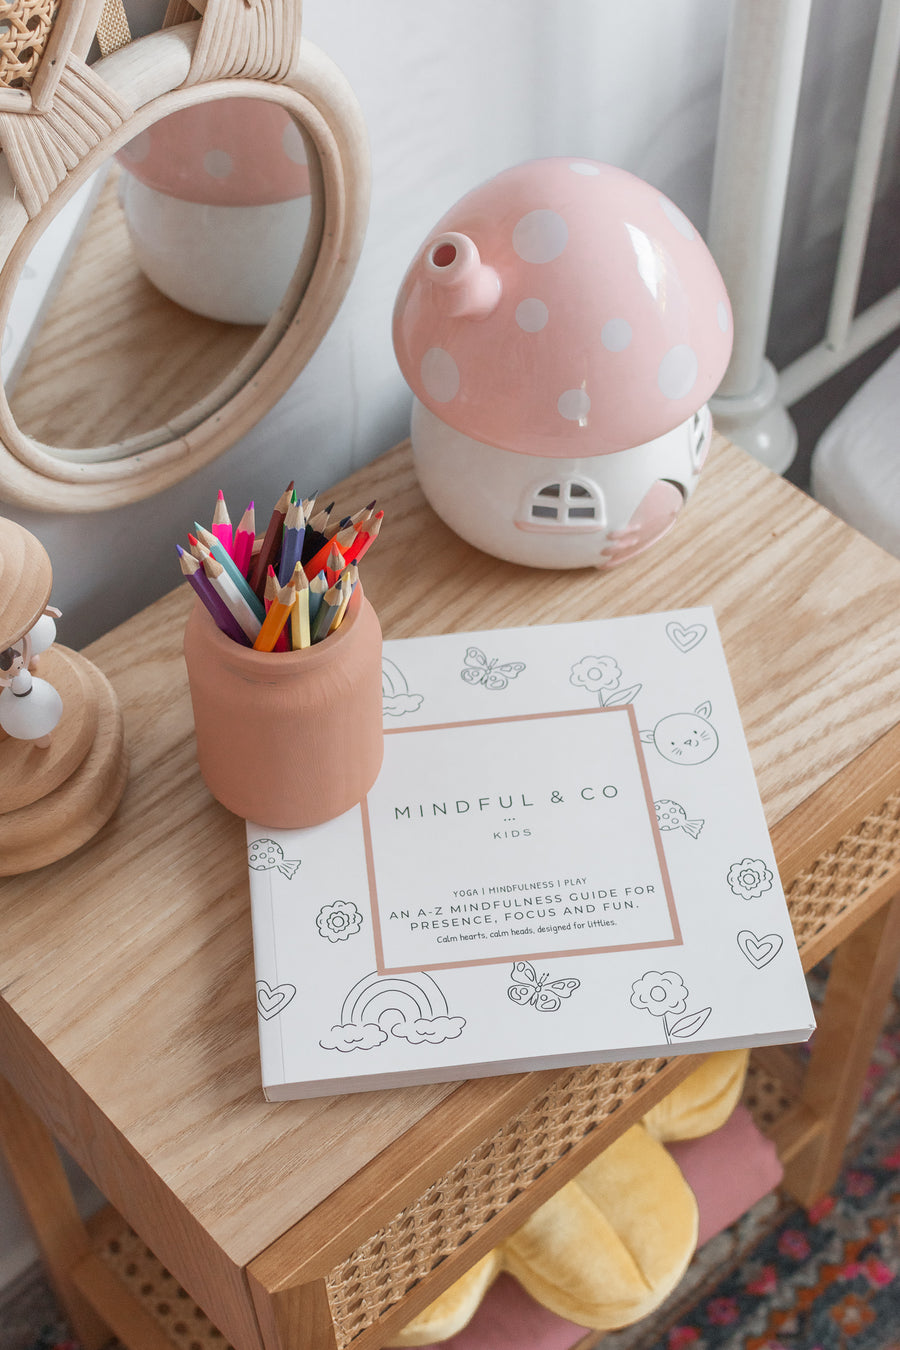 ABCs of Mindfulness - Colouring Book